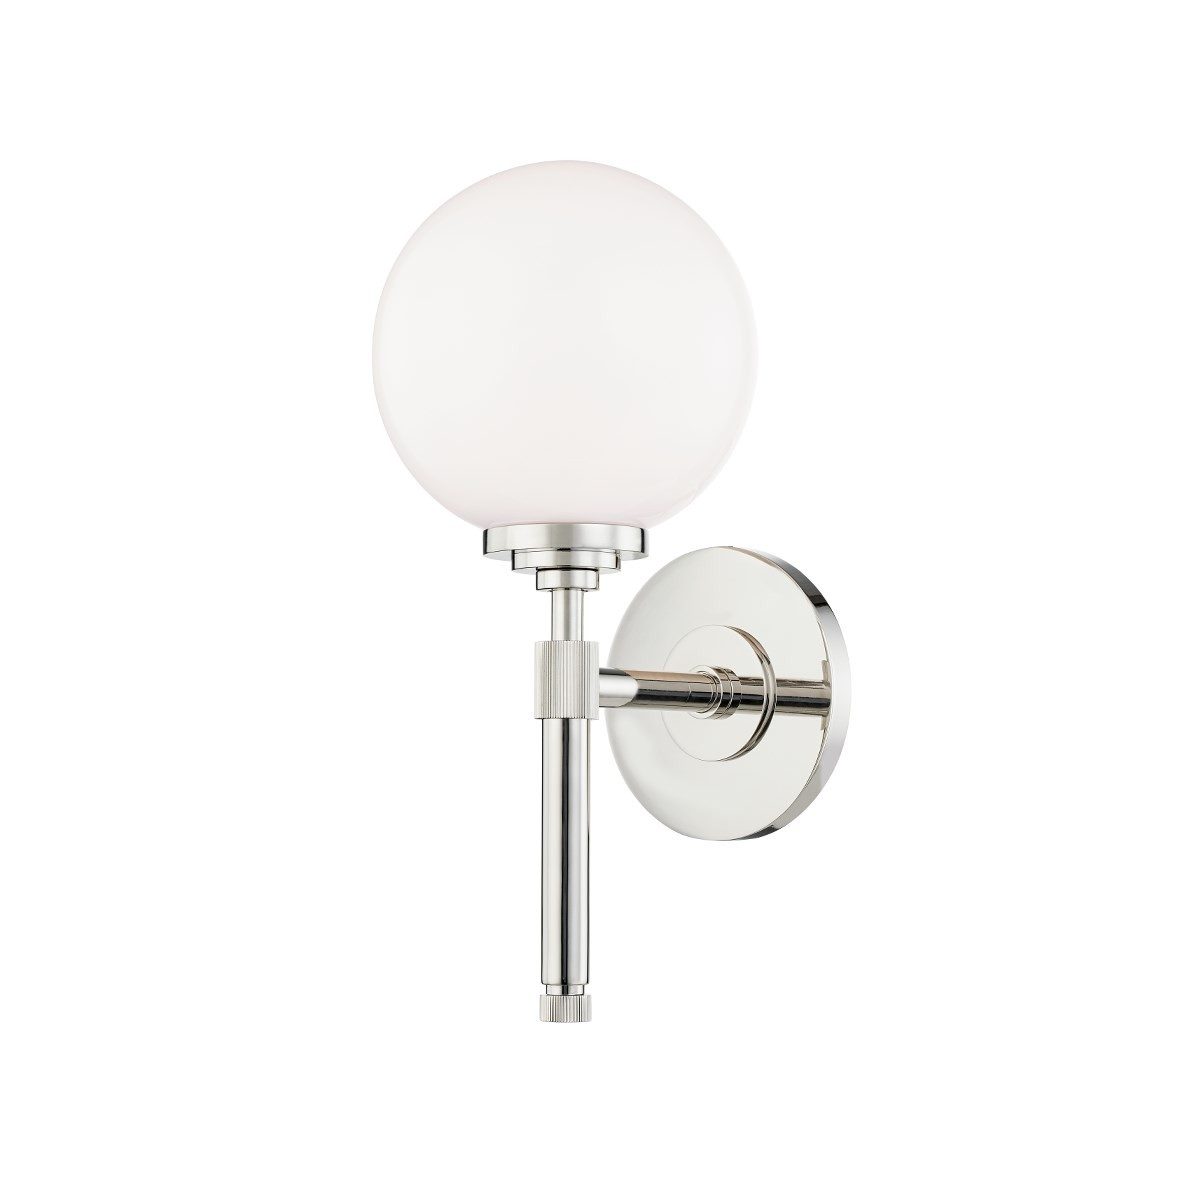 Hudson Valley | Bowery Bath and Vanity Wall Light | Polished Nickel